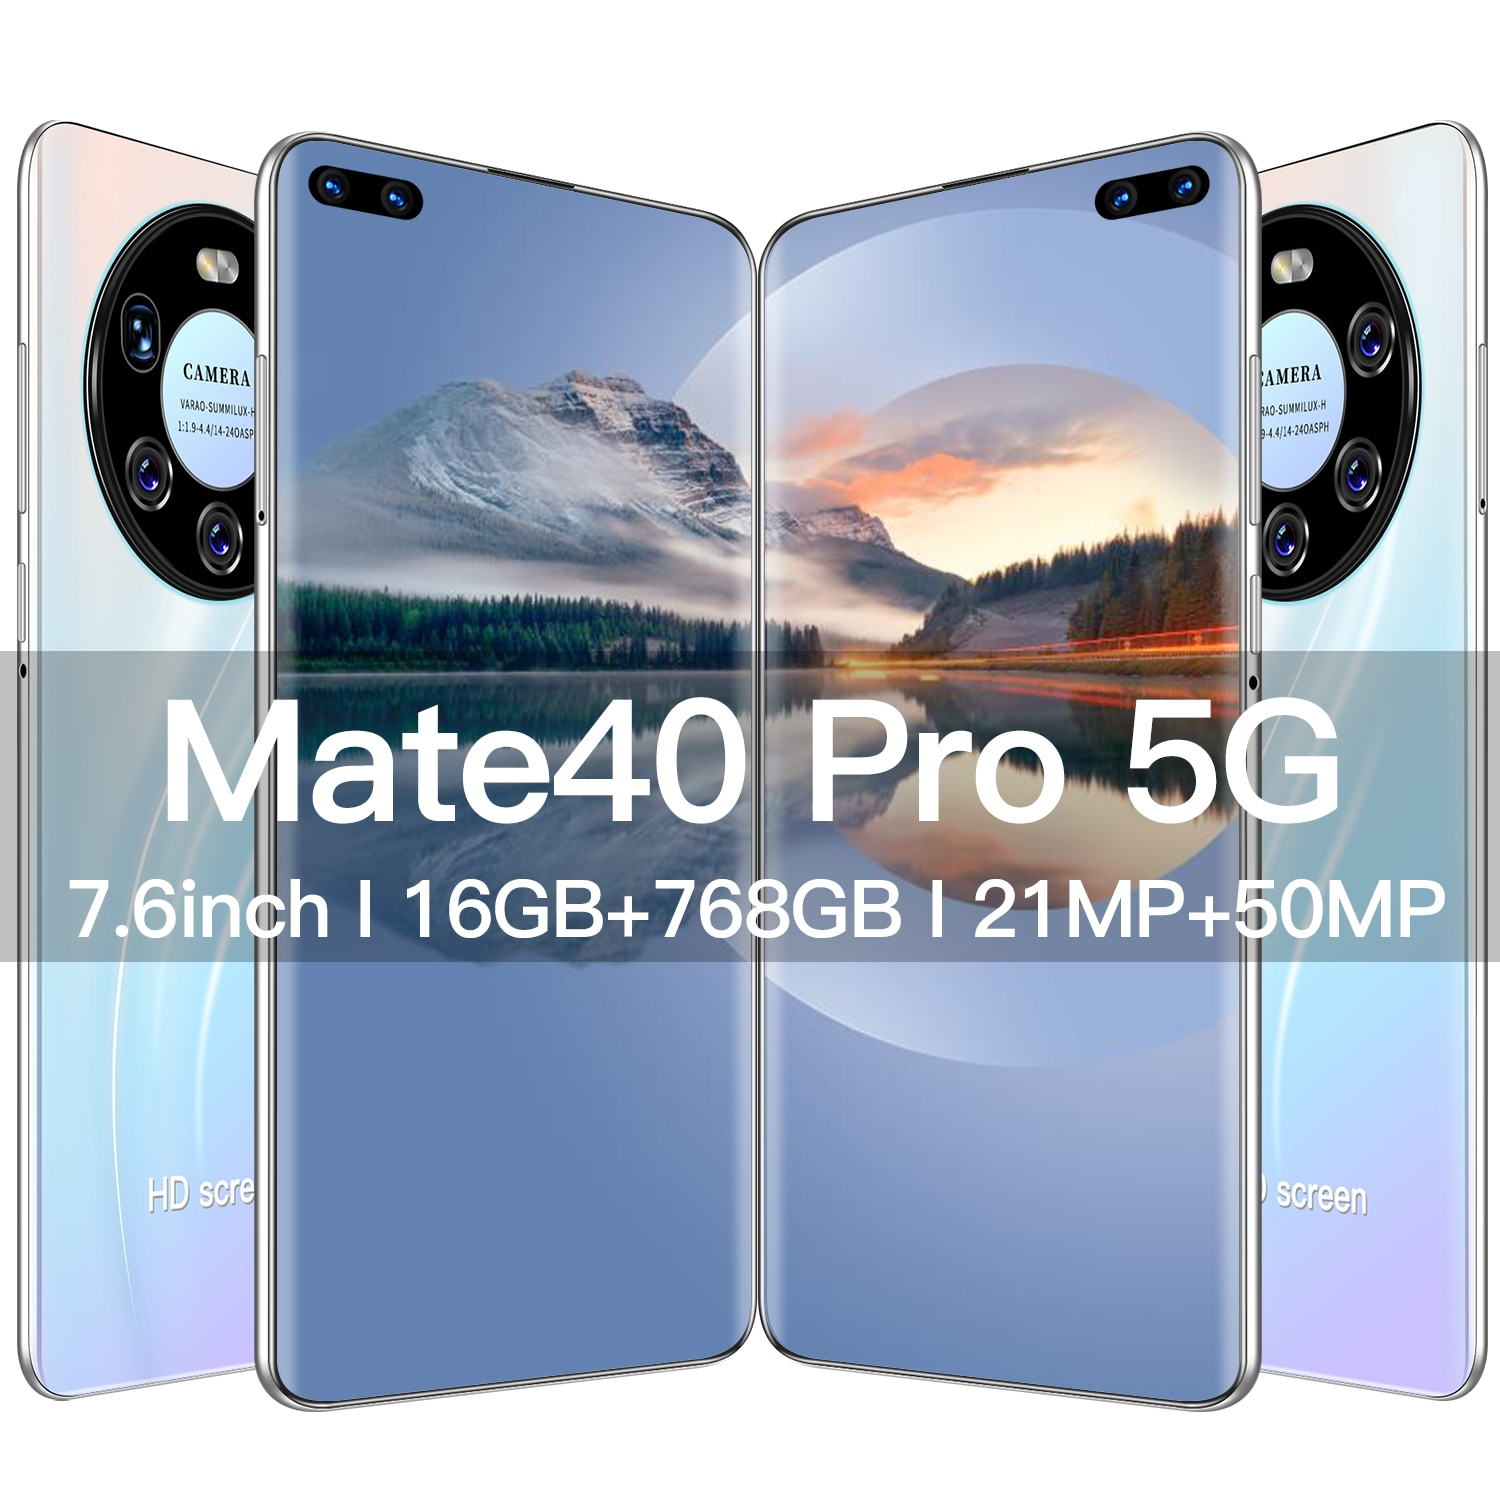 Mate40 Pro+ cheap smartphone new Cell Phone 16GB+768GB Cell Phone Android11.0 and 7.6Inch HD Screen 5G Network Smartphone